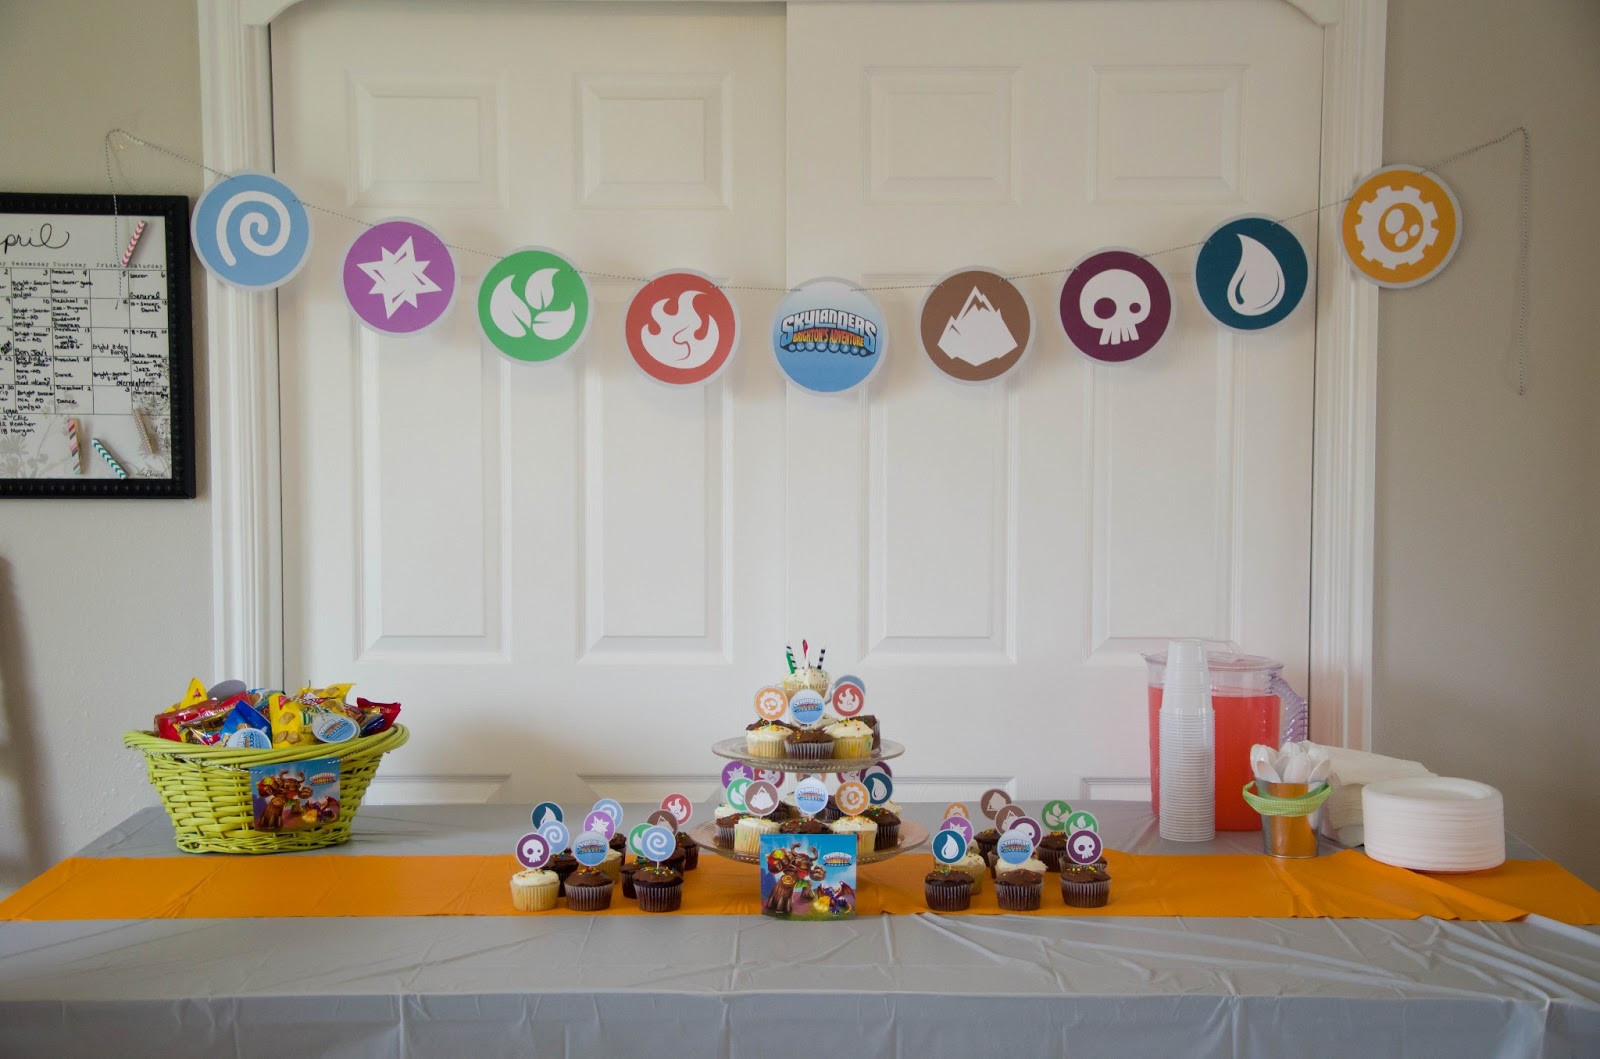 Best ideas about Skylanders Birthday Party . Save or Pin Skylanders Birthday Party Housewives of Riverton Now.